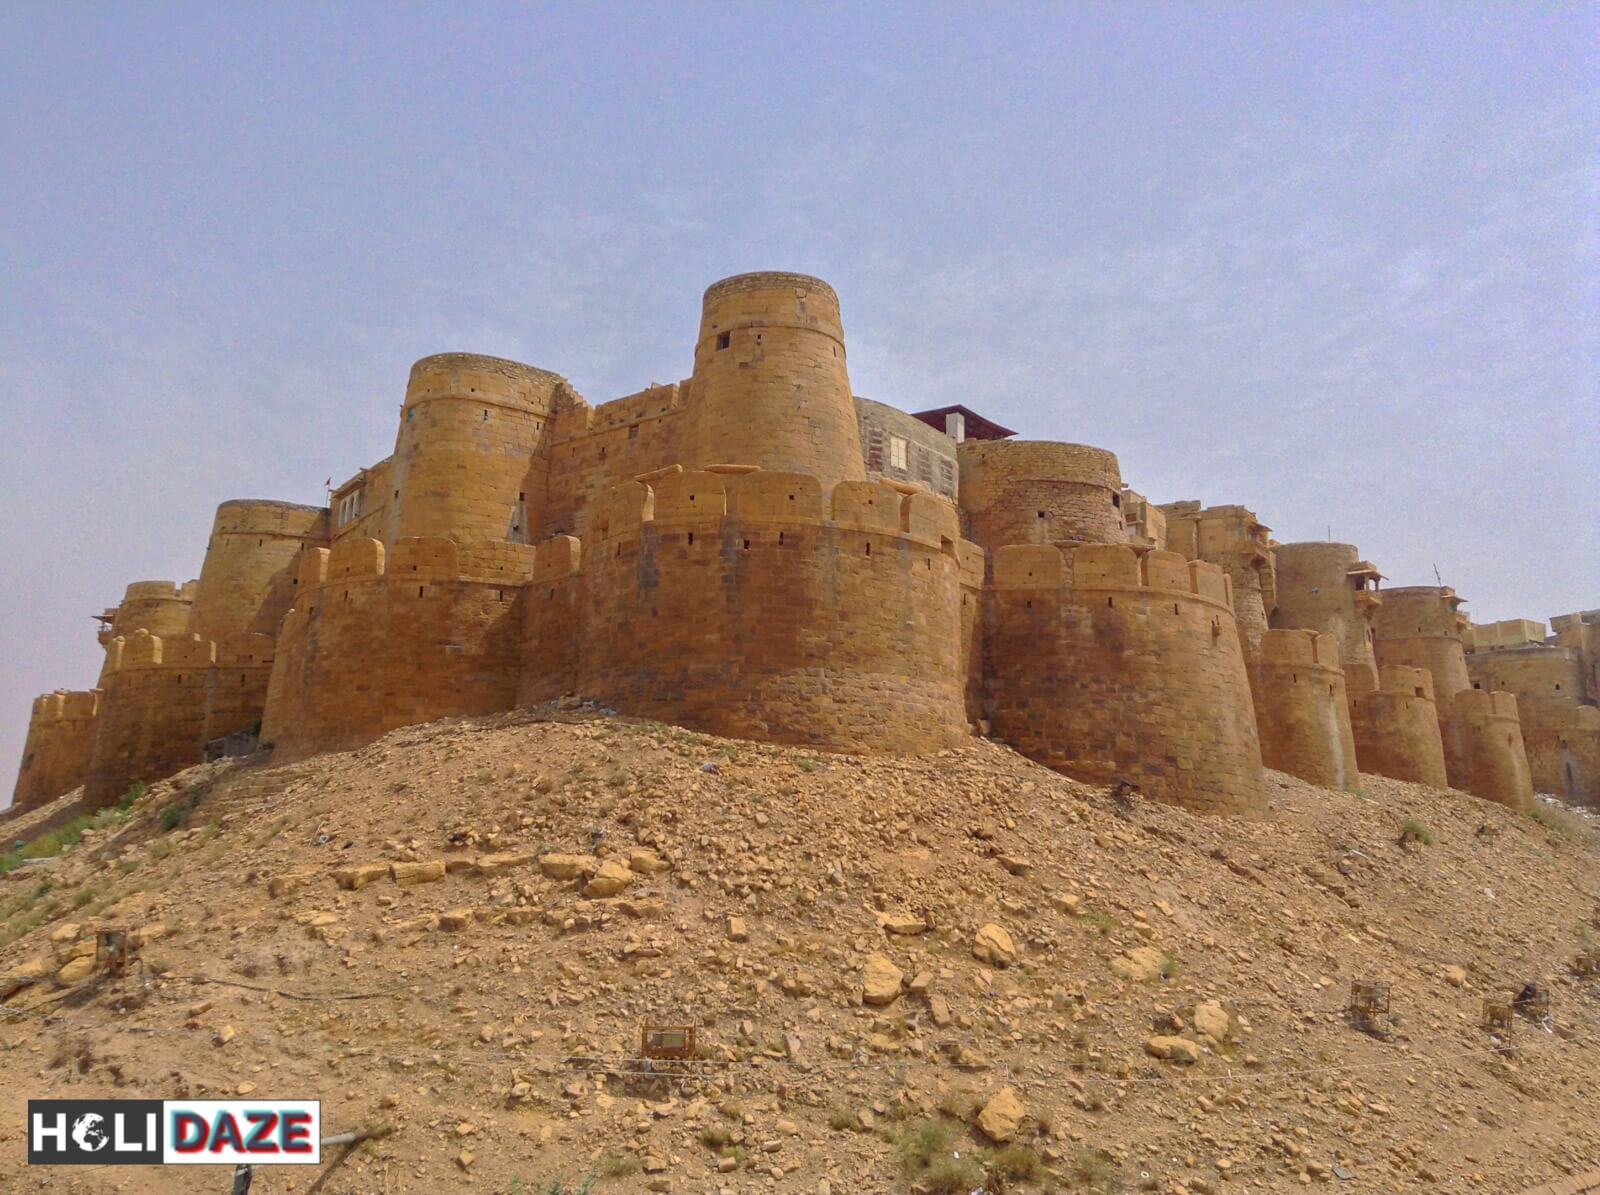 Jaisalmer Fort, the oldest and most well-preserved of all the historic royal Rajasthan forts